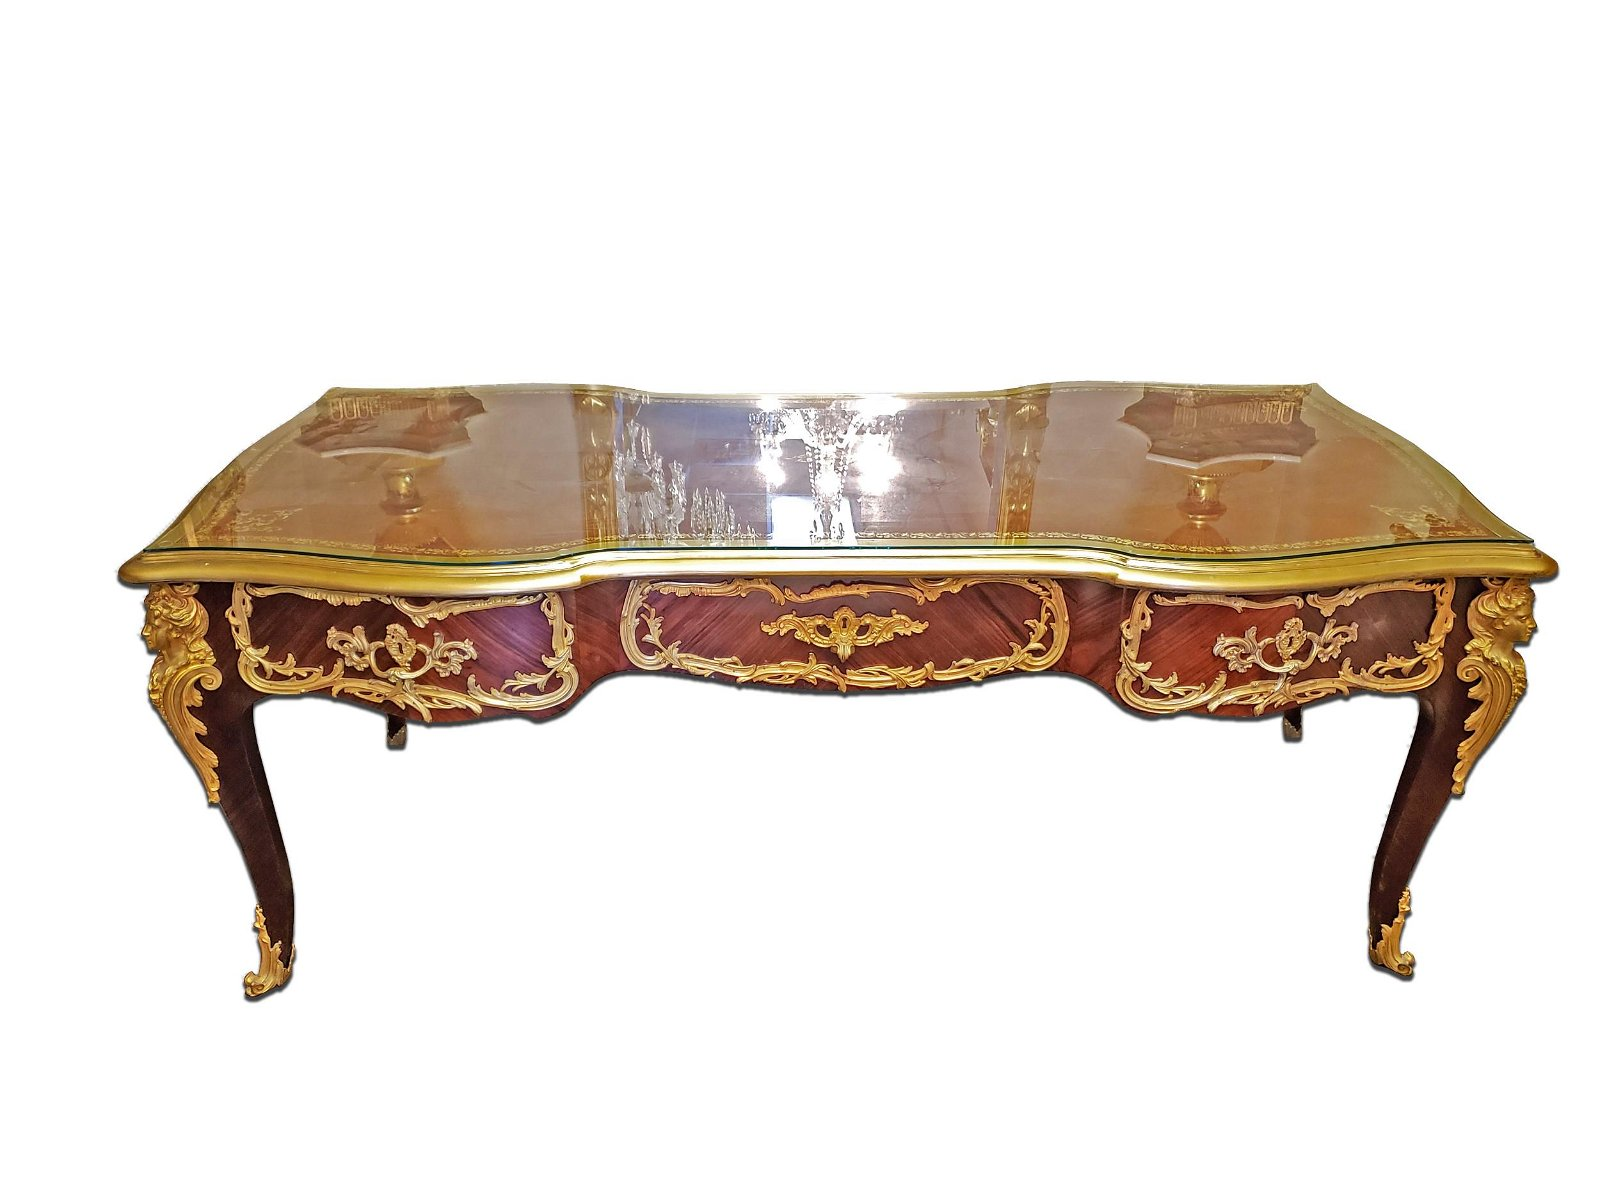 Magnificent F. Linke Kingwood & Gilt Bronze Desk, 19th